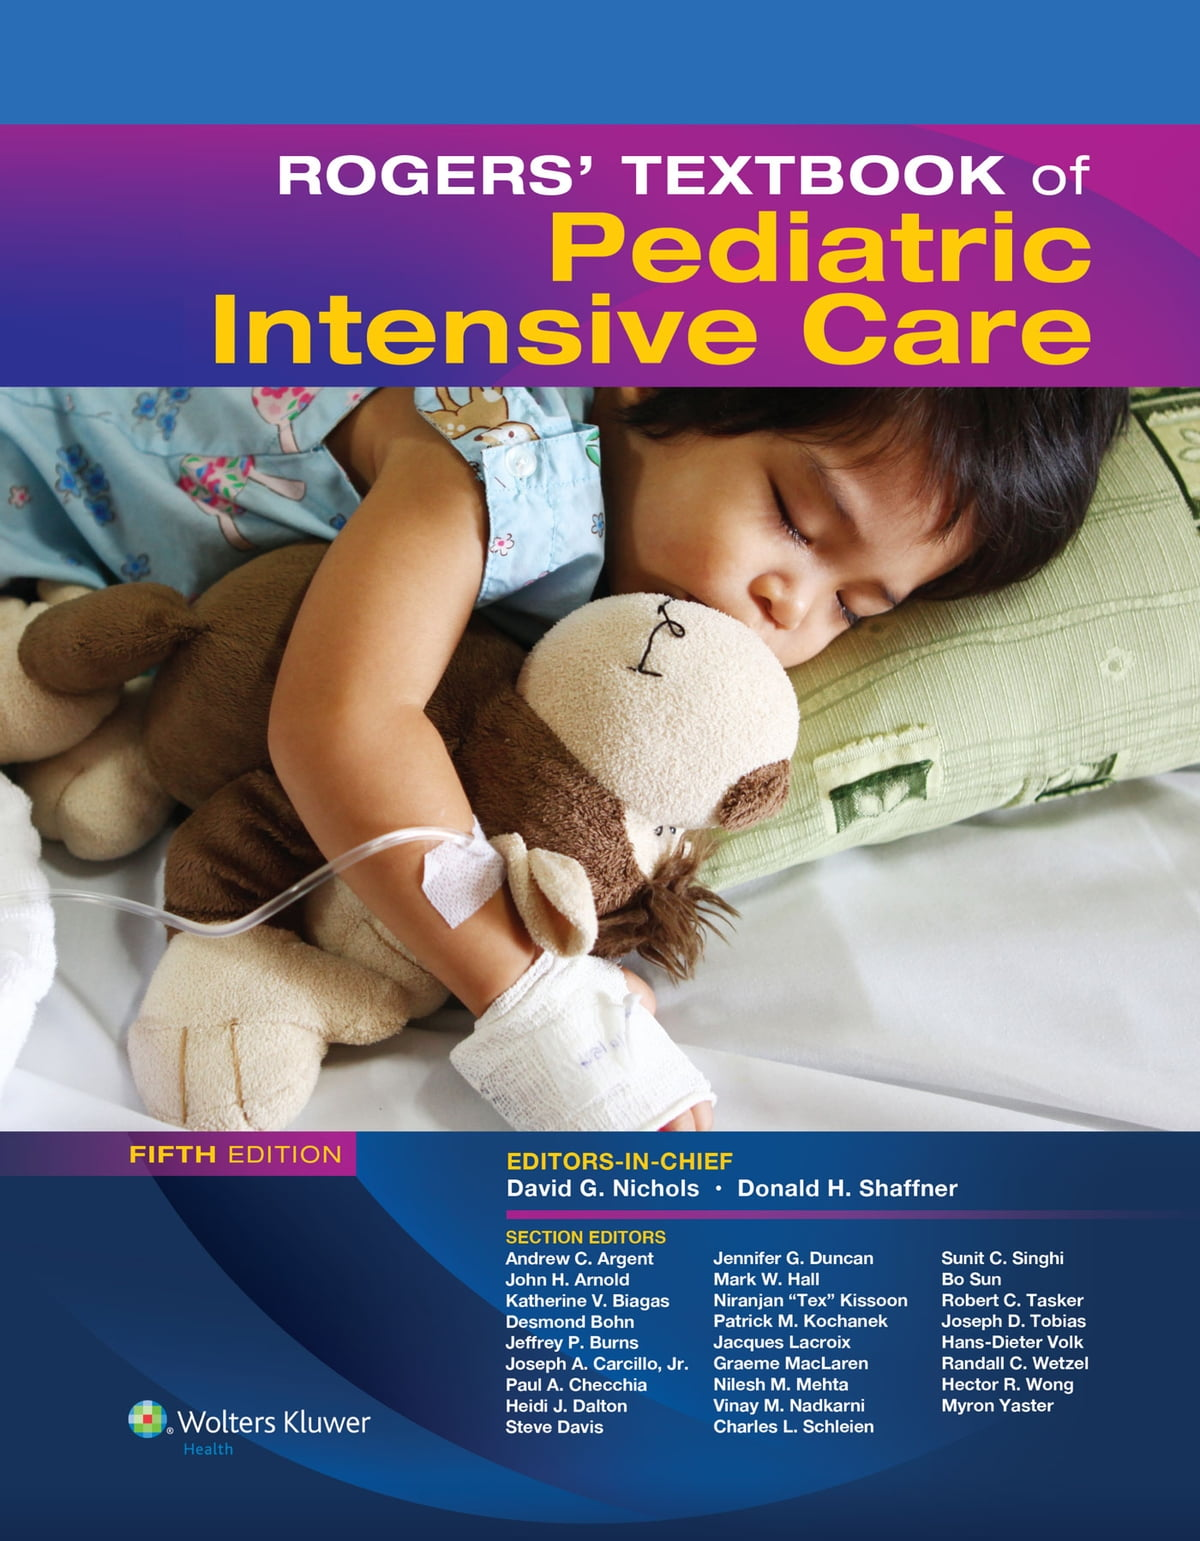 Rogers' Textbook of Pediatric Intensive Care eBook by Donald H. Shaffner -  9781469888378 | Rakuten Kobo